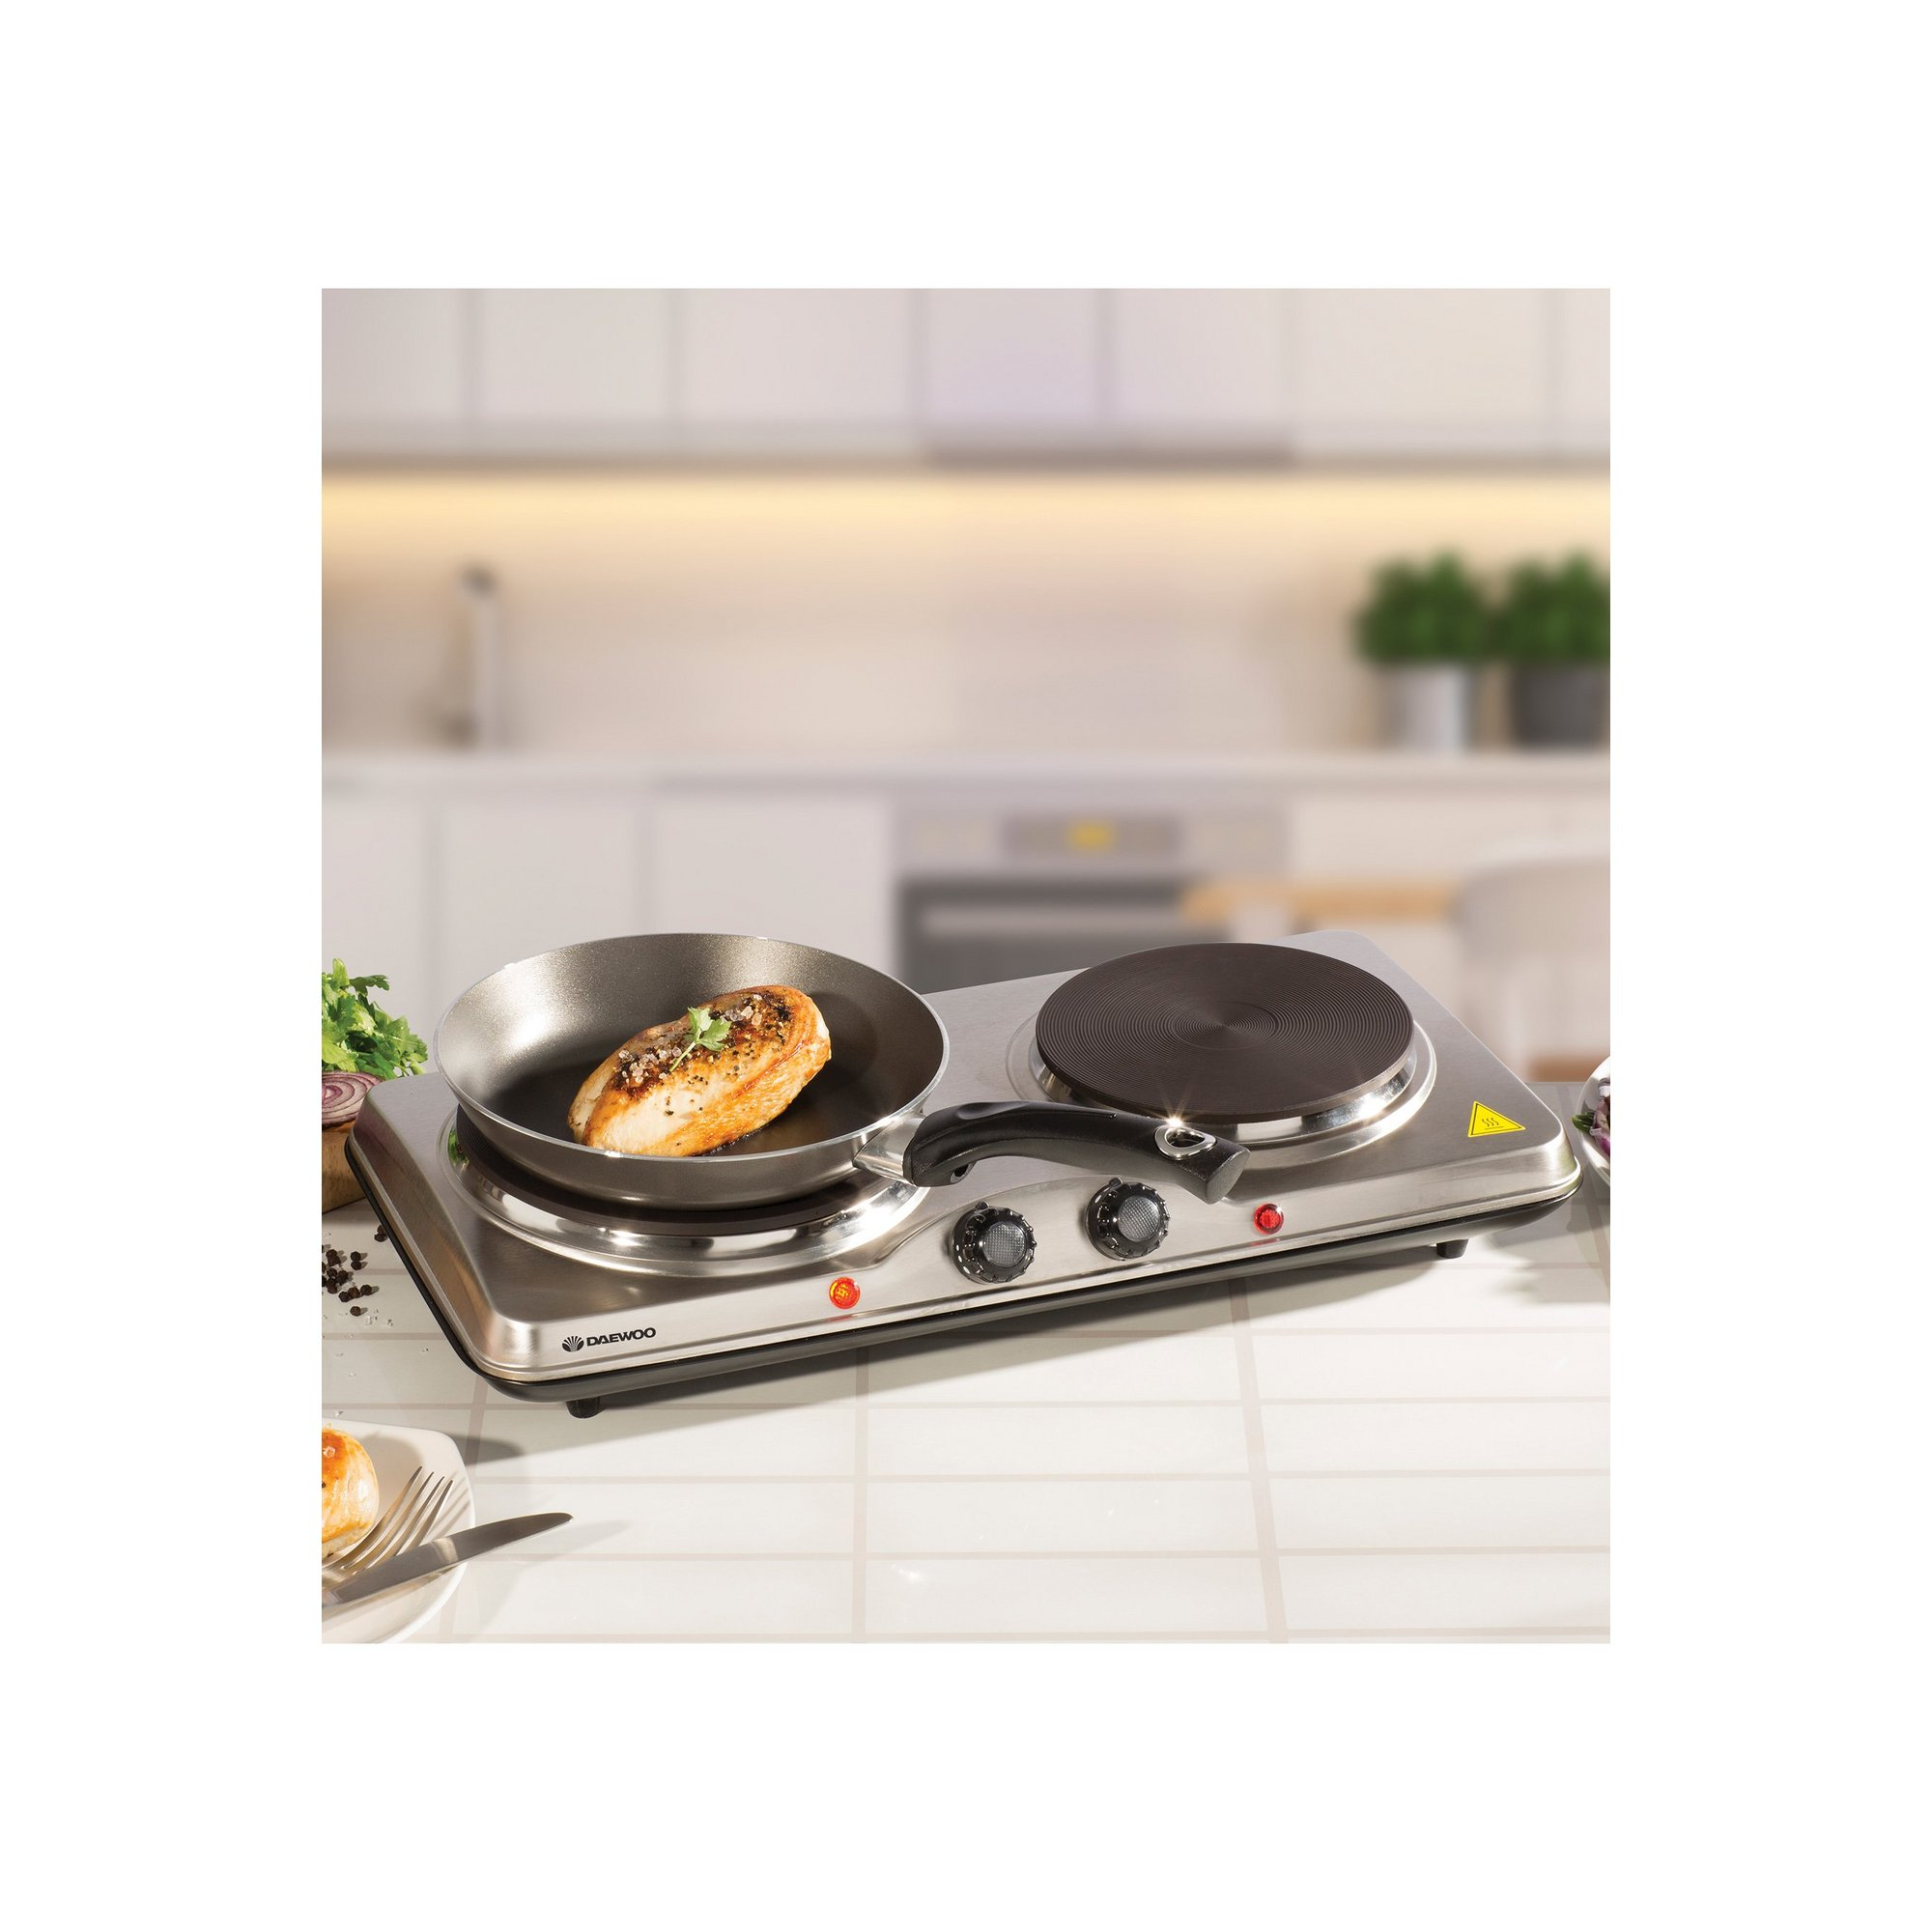 Image of Daewoo Double Stainless Steel Hot Plate